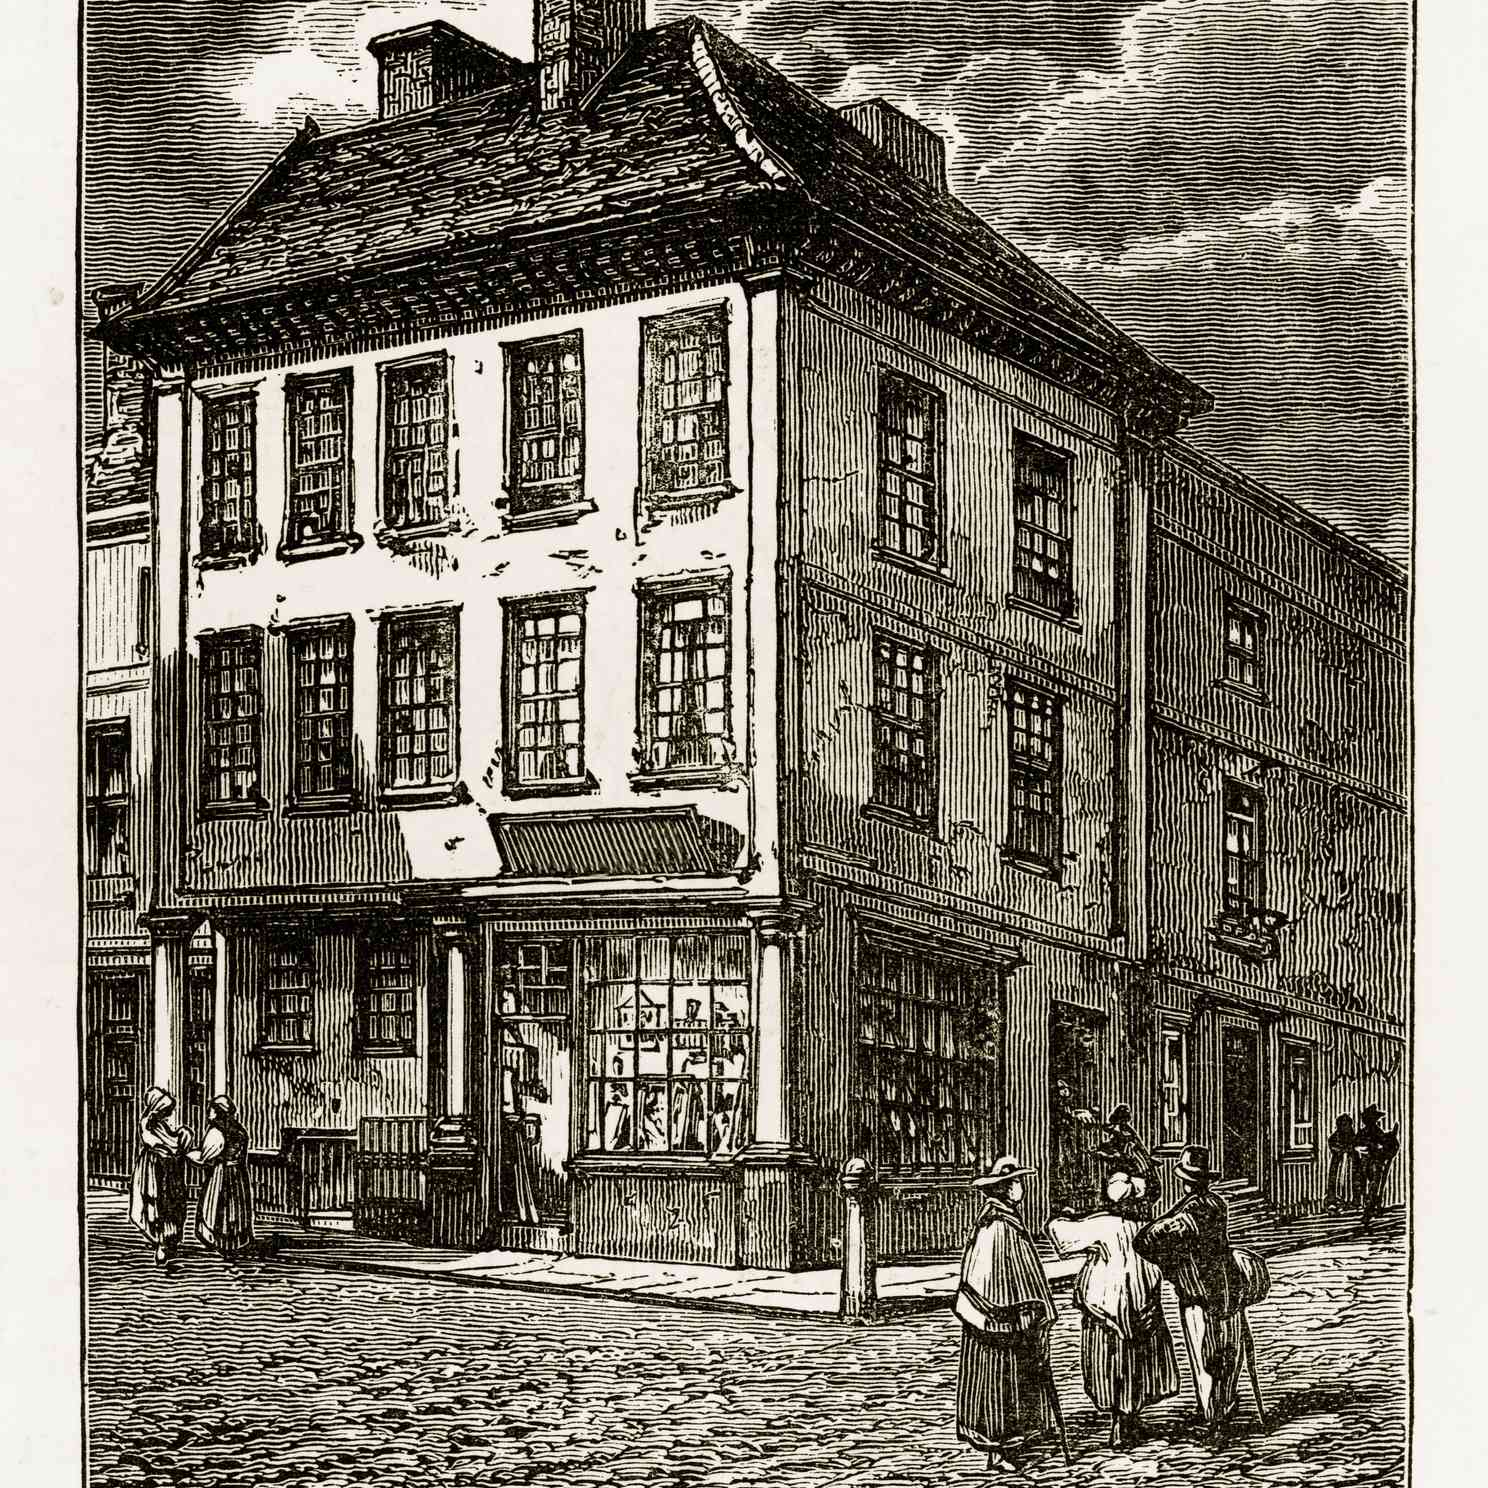 Dr. Johnson Birthplace in Litchfield, Staffordshire, England Victorian Engraving, 1840